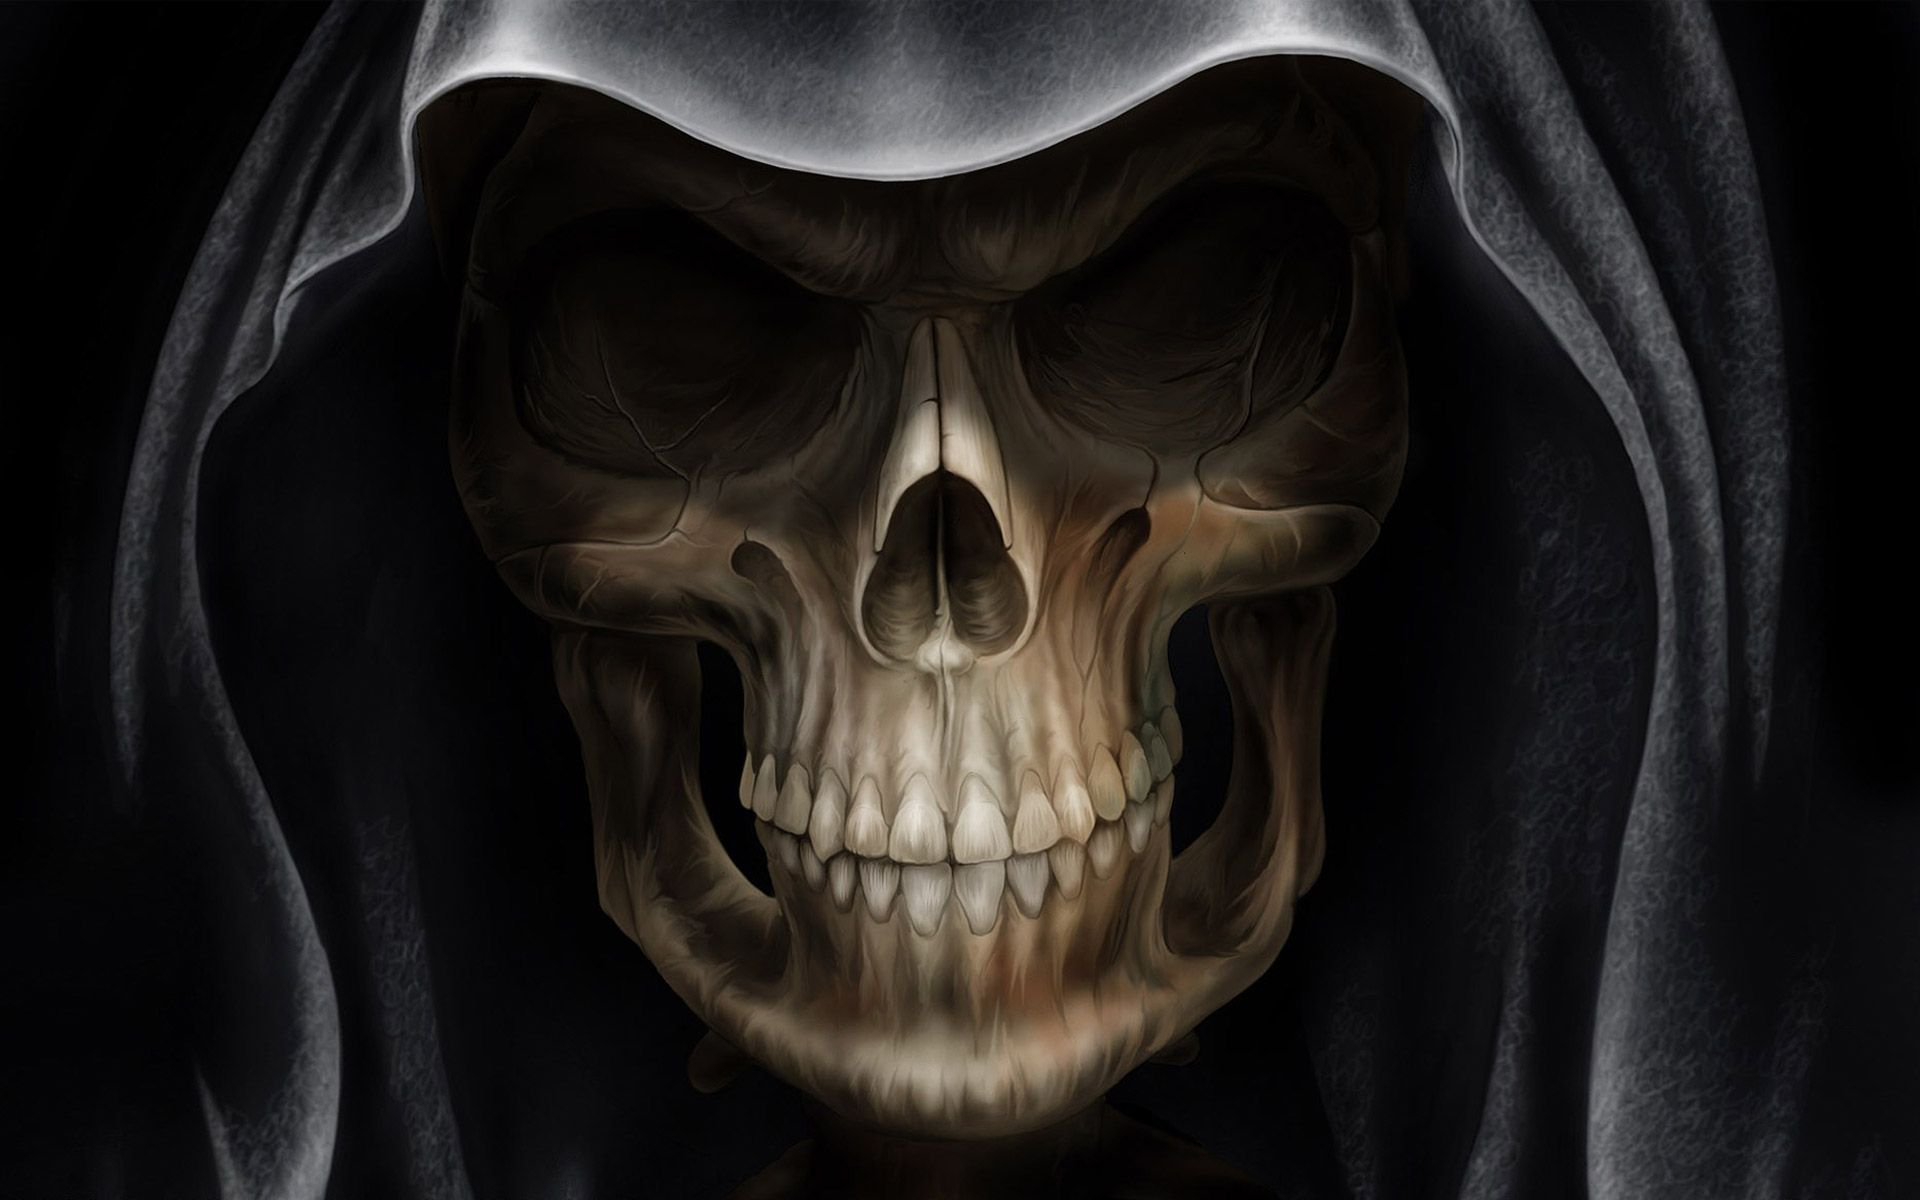 Full-HD-1080p-Skull-HD-Desktop-Backgrounds-1920x1080-wallpaper-wp3605985-1